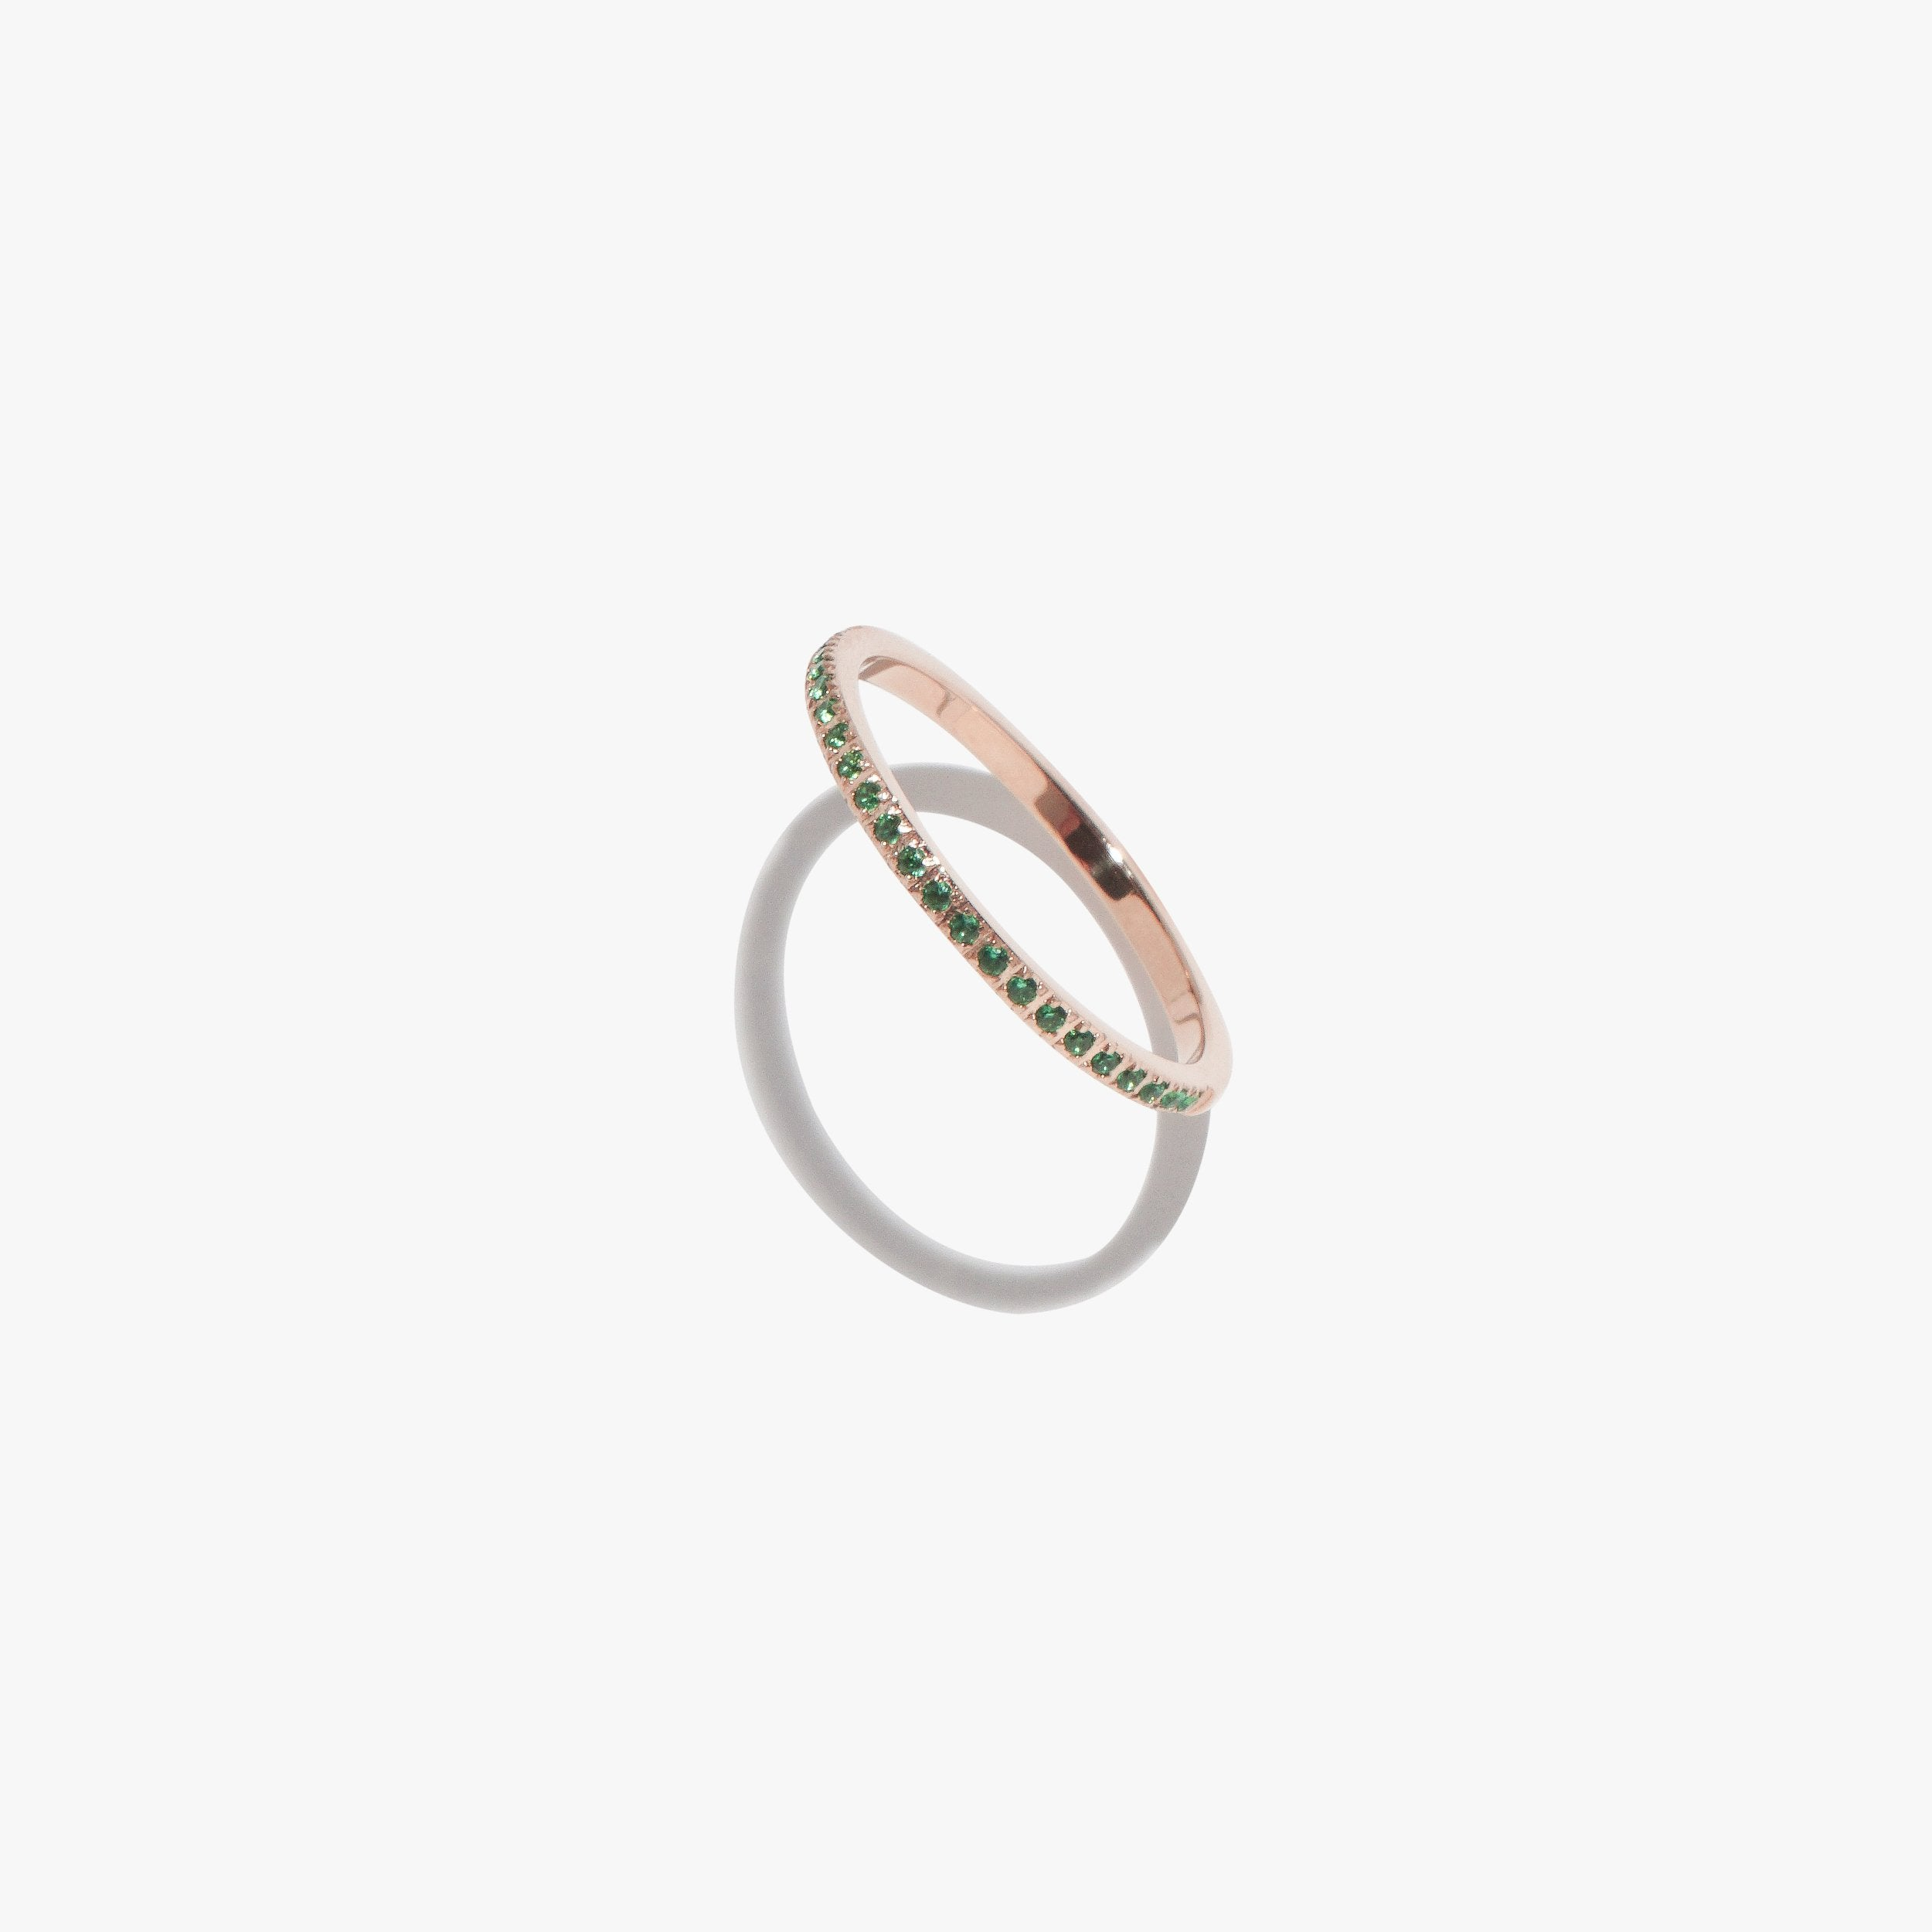 Rings - Emerald Satellite Ring - Rose Gold